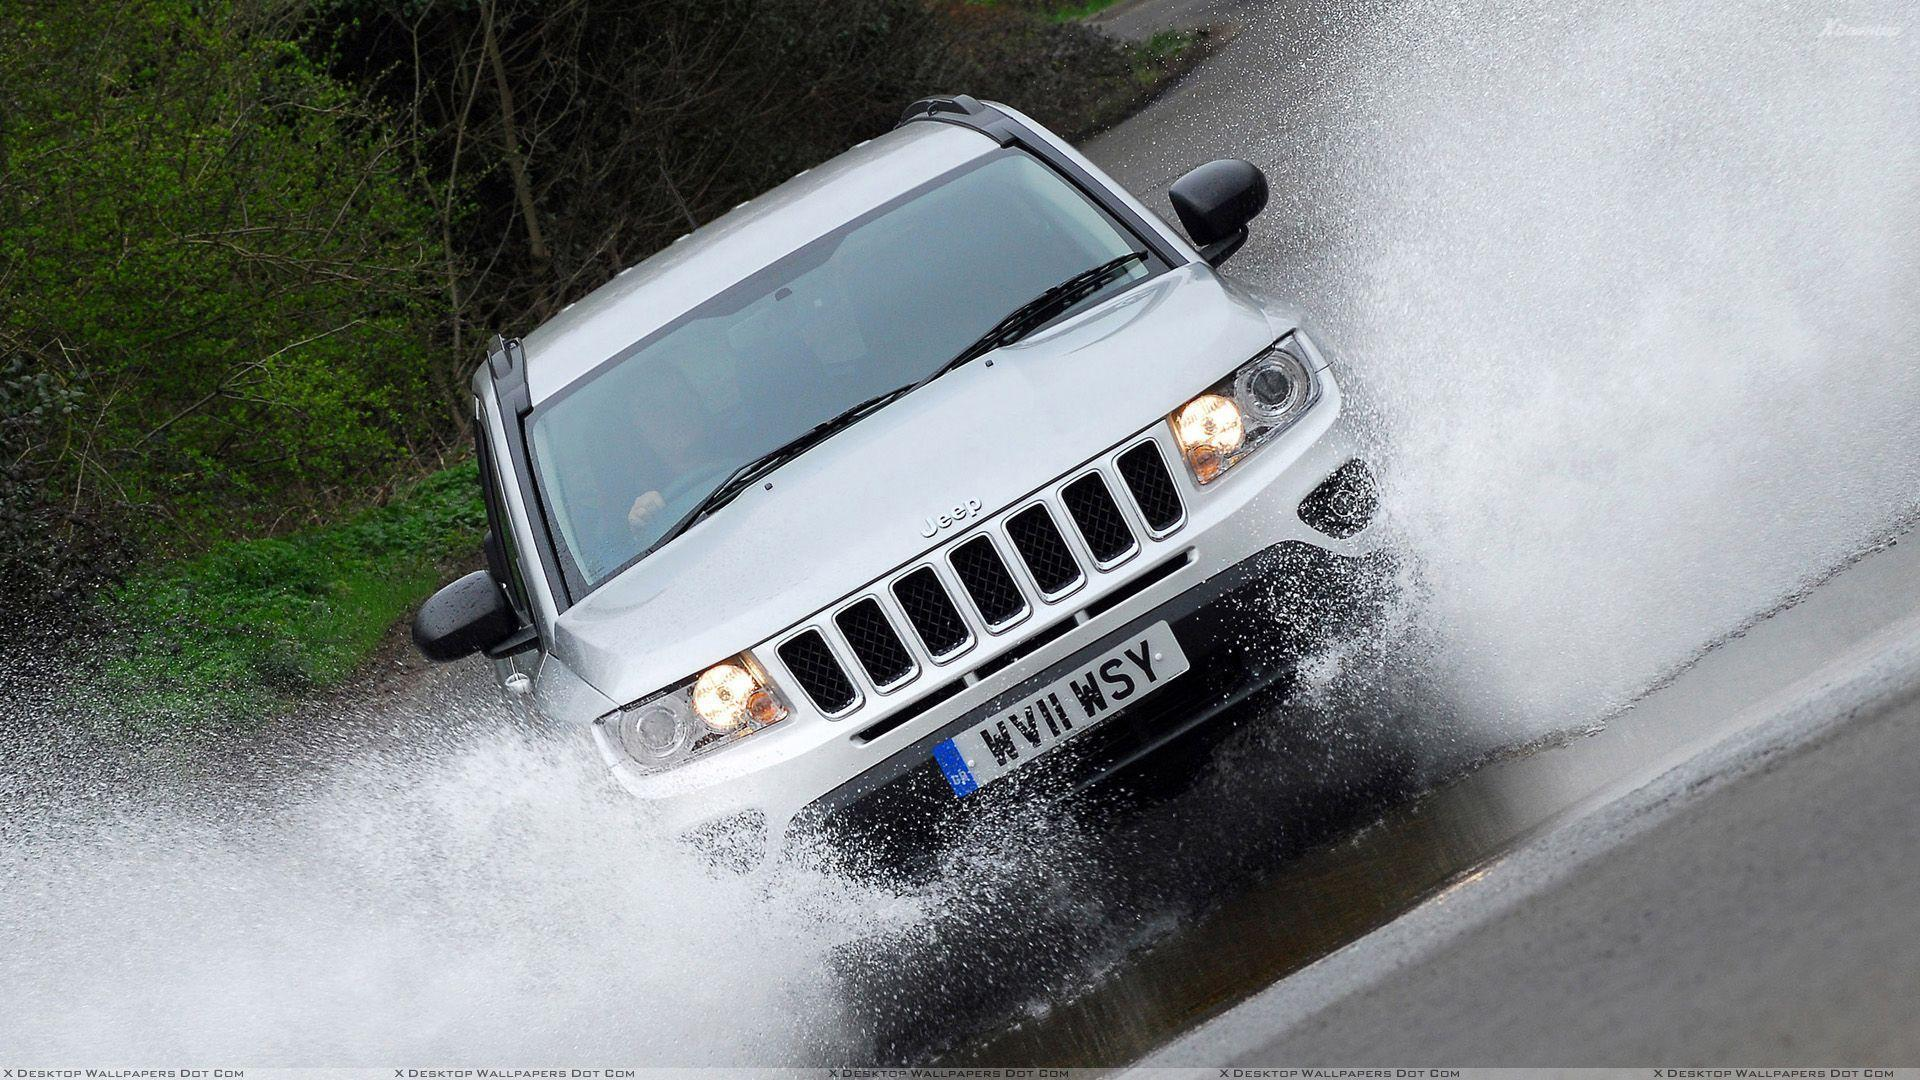 Jeep Wallpapers, Photos & Image in HD